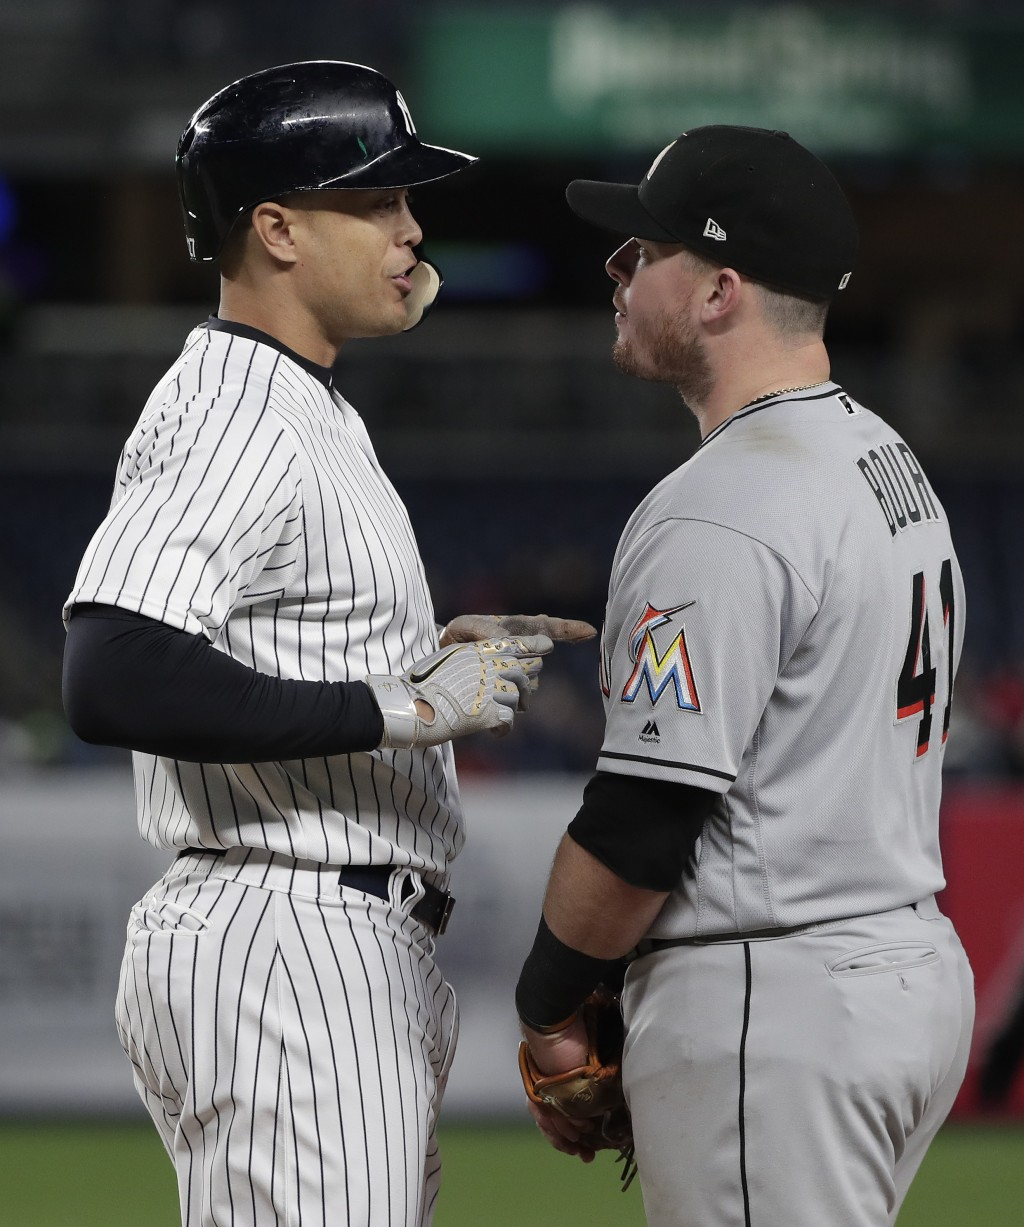 New York Yankees' Giancarlo Stanton, left, speaks with Miami Marlins first baseman Justin Bour (41) after walking during the fourth inning of a baseba